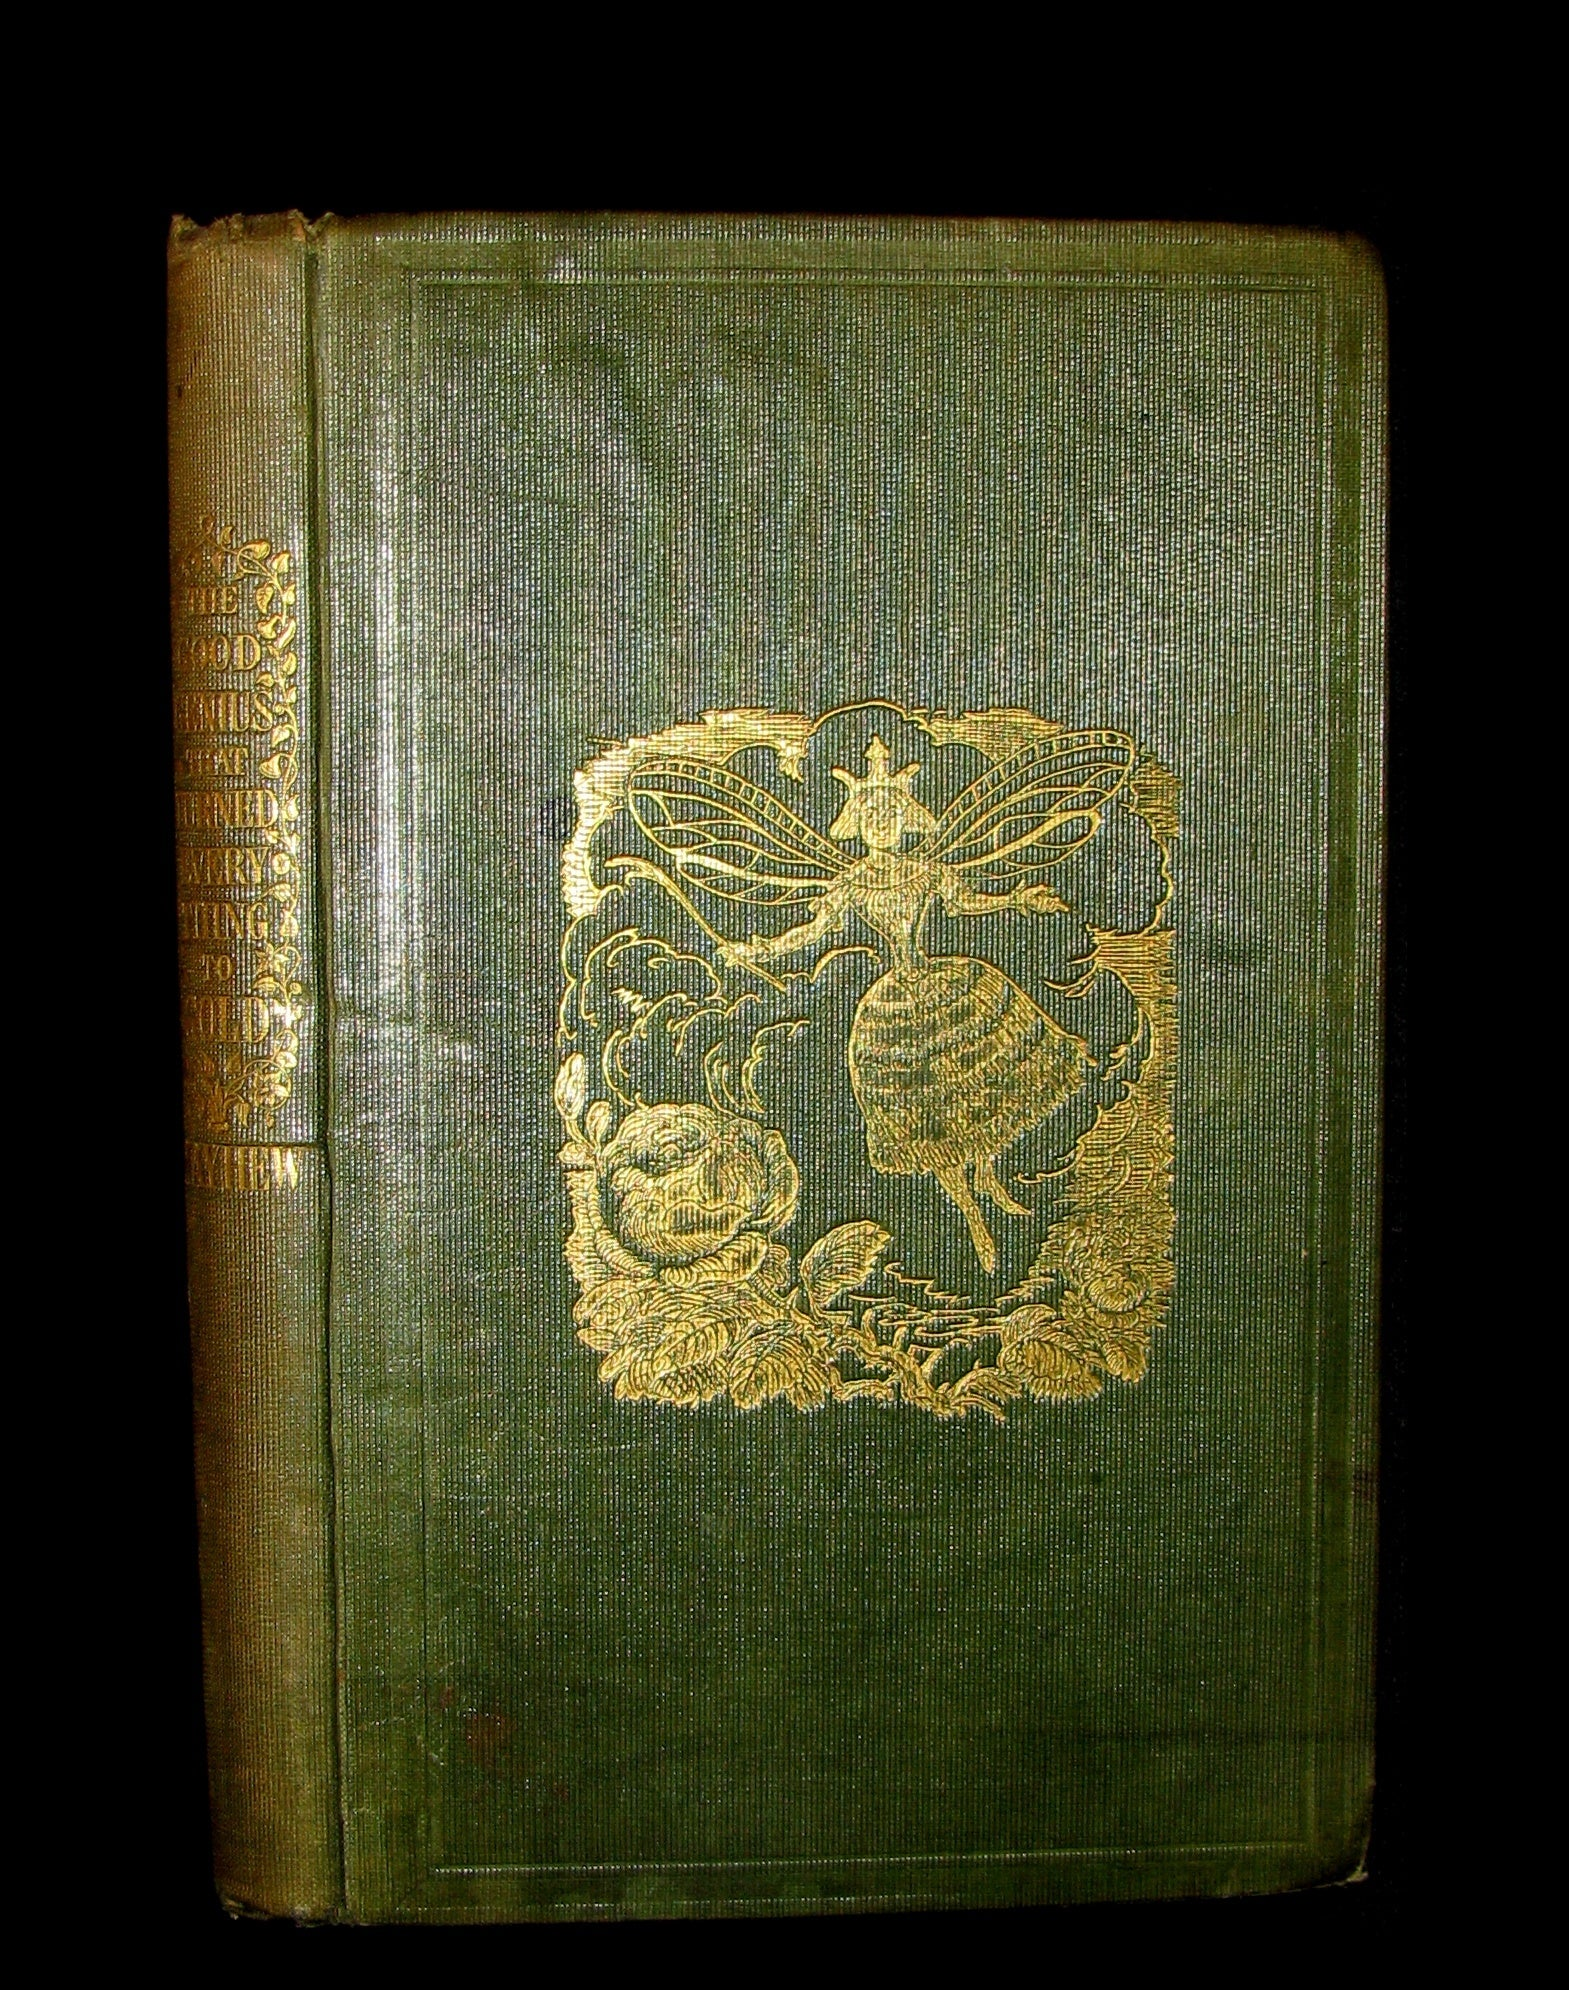 1847 Scarce 1stED - The Good Genius that Turned Everything into Gold; A Fairy Tale.